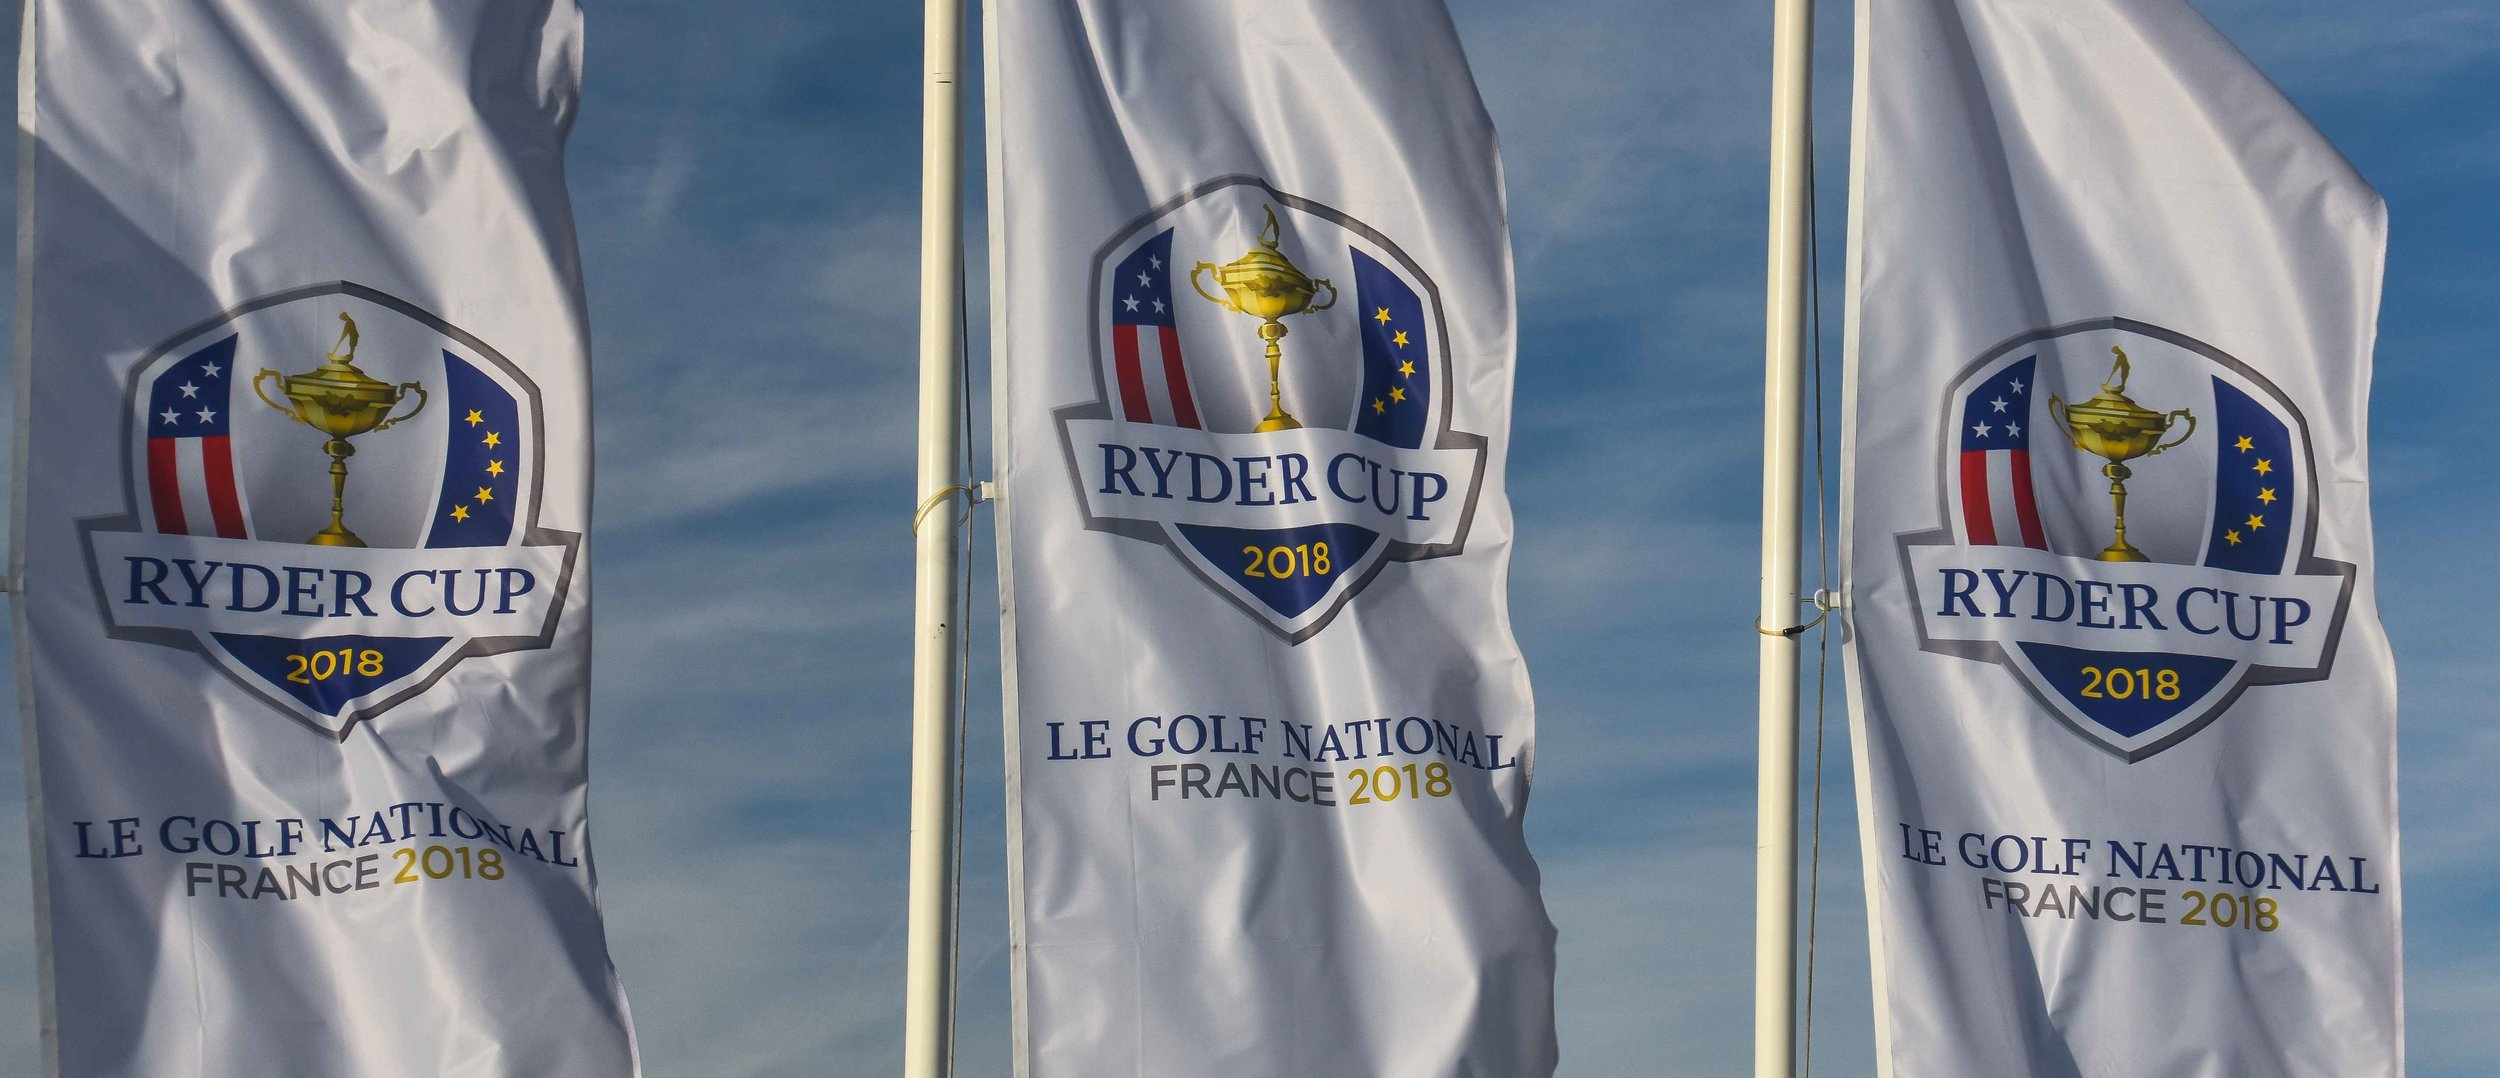 They have the flags up and the carts fully charged.  Le Golf National is Ryder Cup ready.